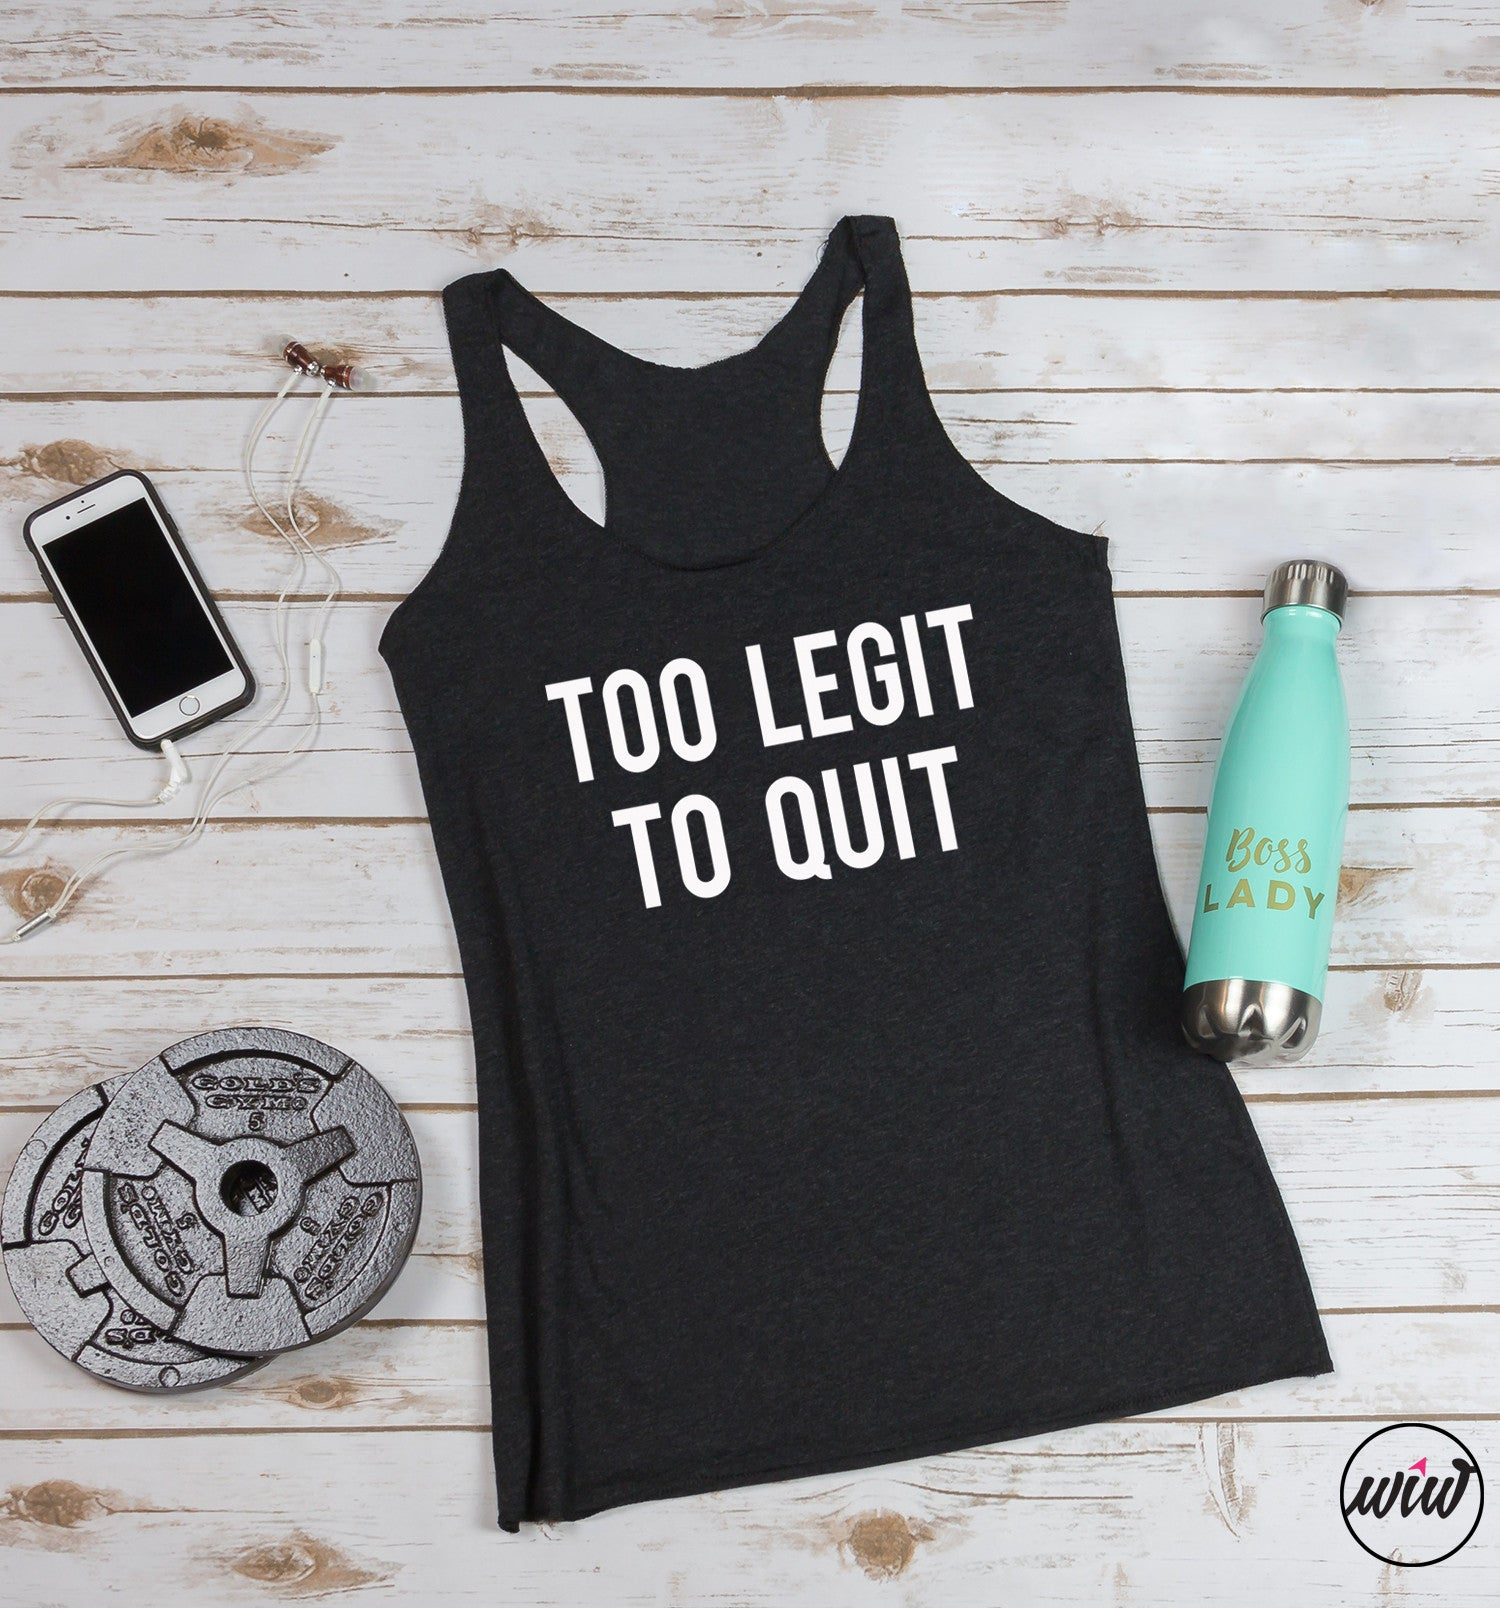 TOO LEGIT to quit. Get It Done. Athletic Apparel. Handle It. Yoga Tank. Workout Tank. Gym Shirt Fitness Tank. Gangster Rap. Running Shirt